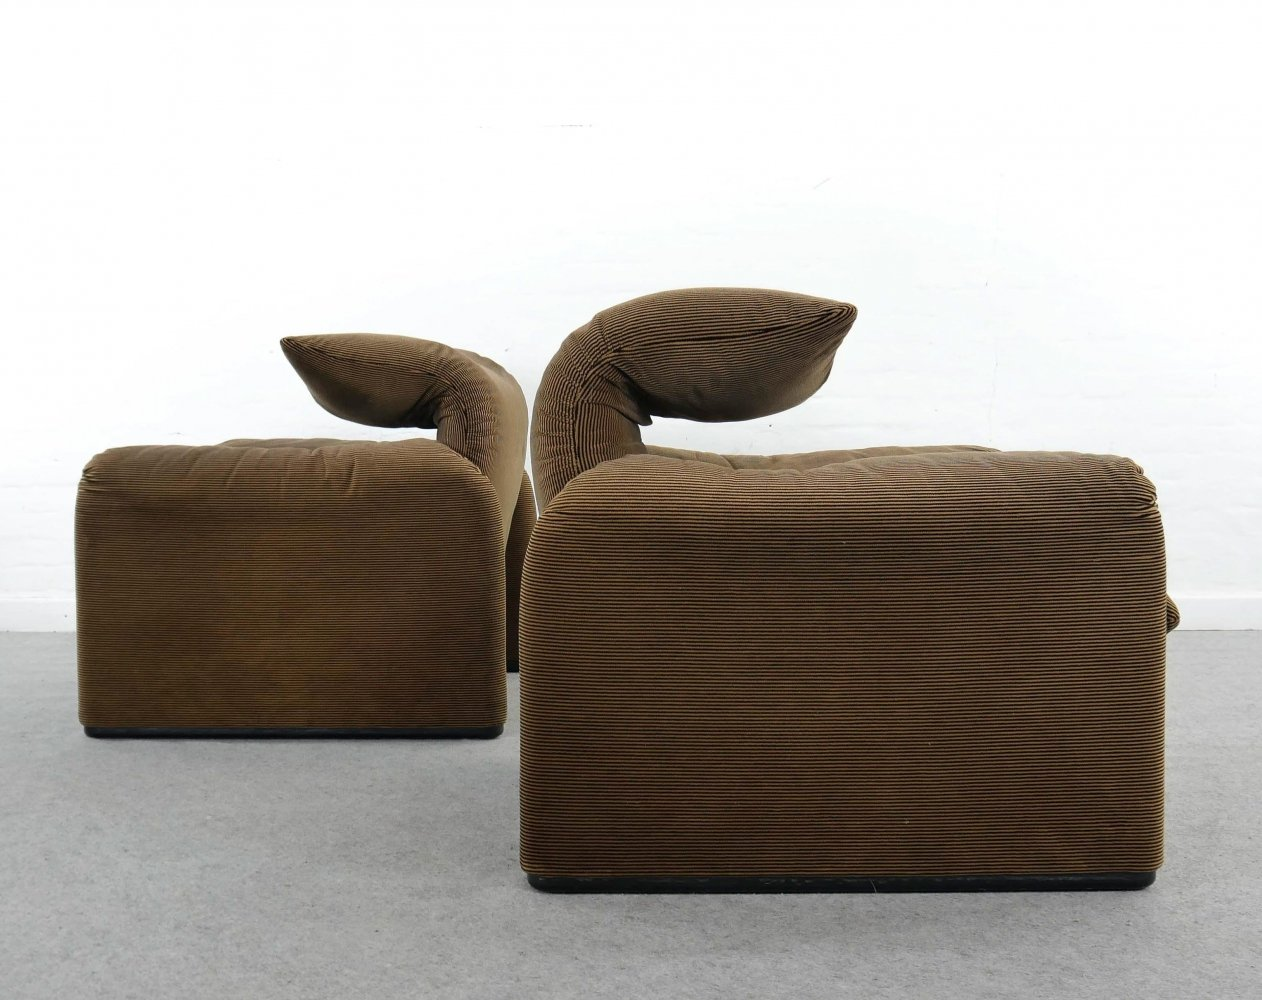 Pair of Maralunga lounge chairs in brown striped fabrics by Cassina, Italy 1990s